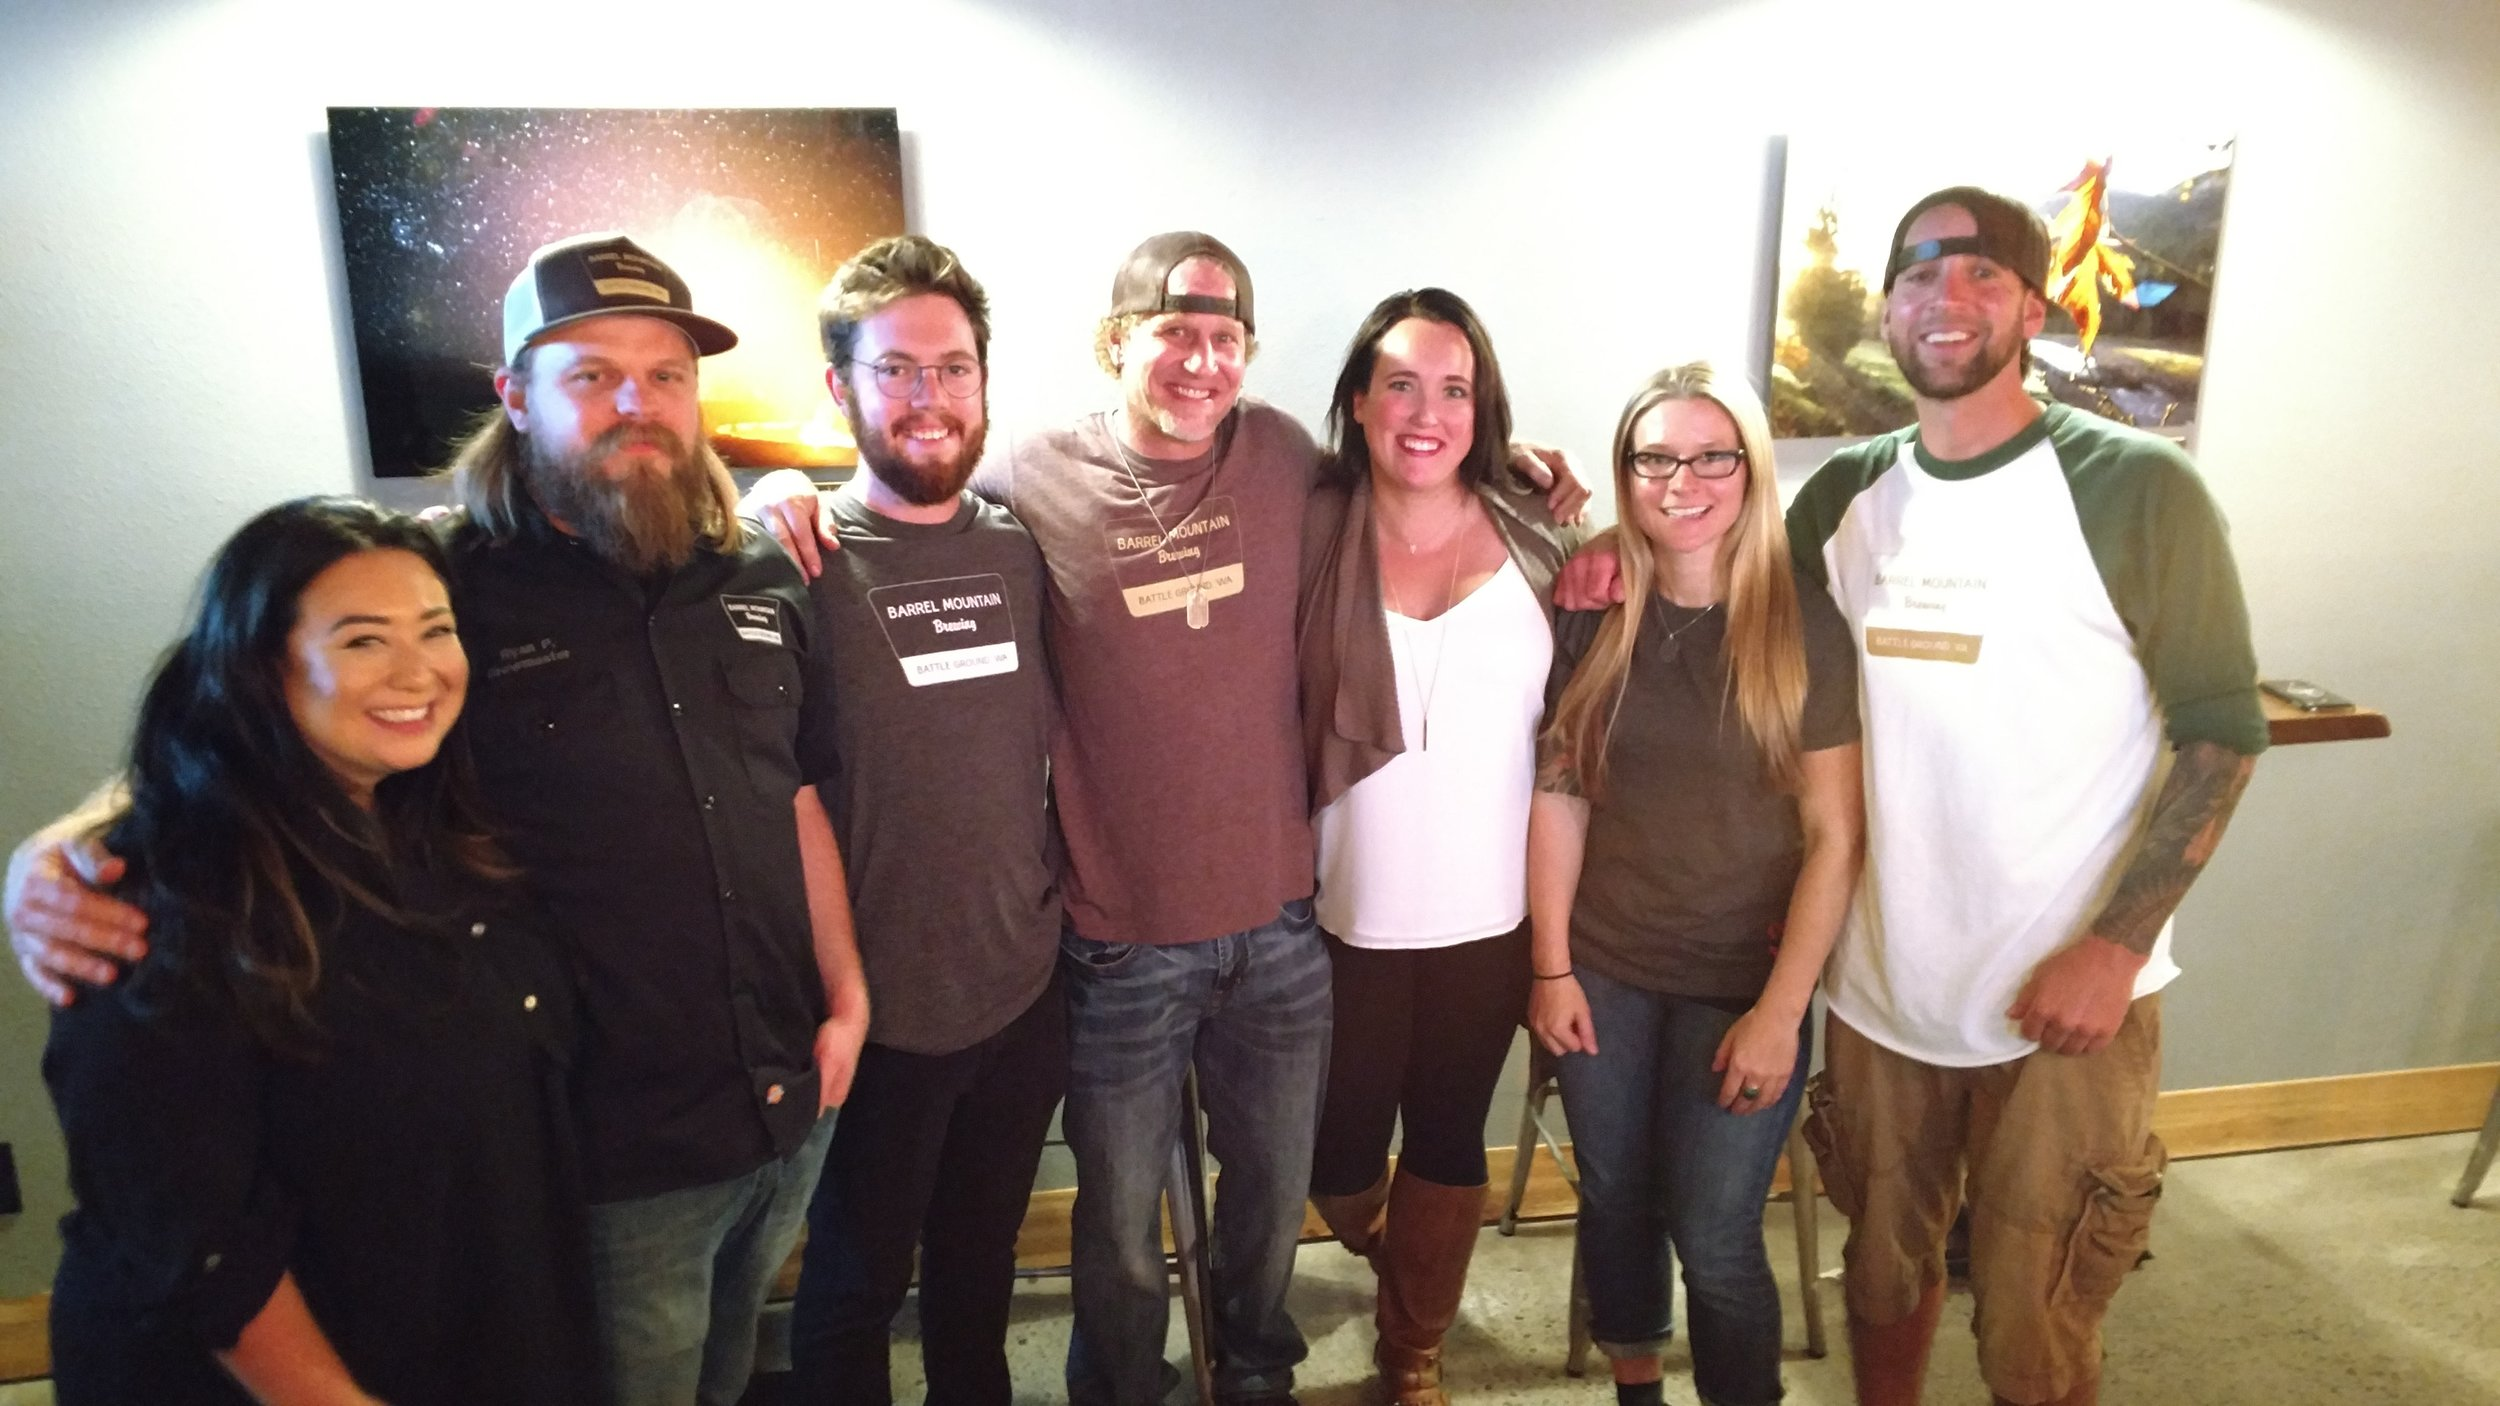 Brewers' Stories - Barrel Mountain Brewing Crew